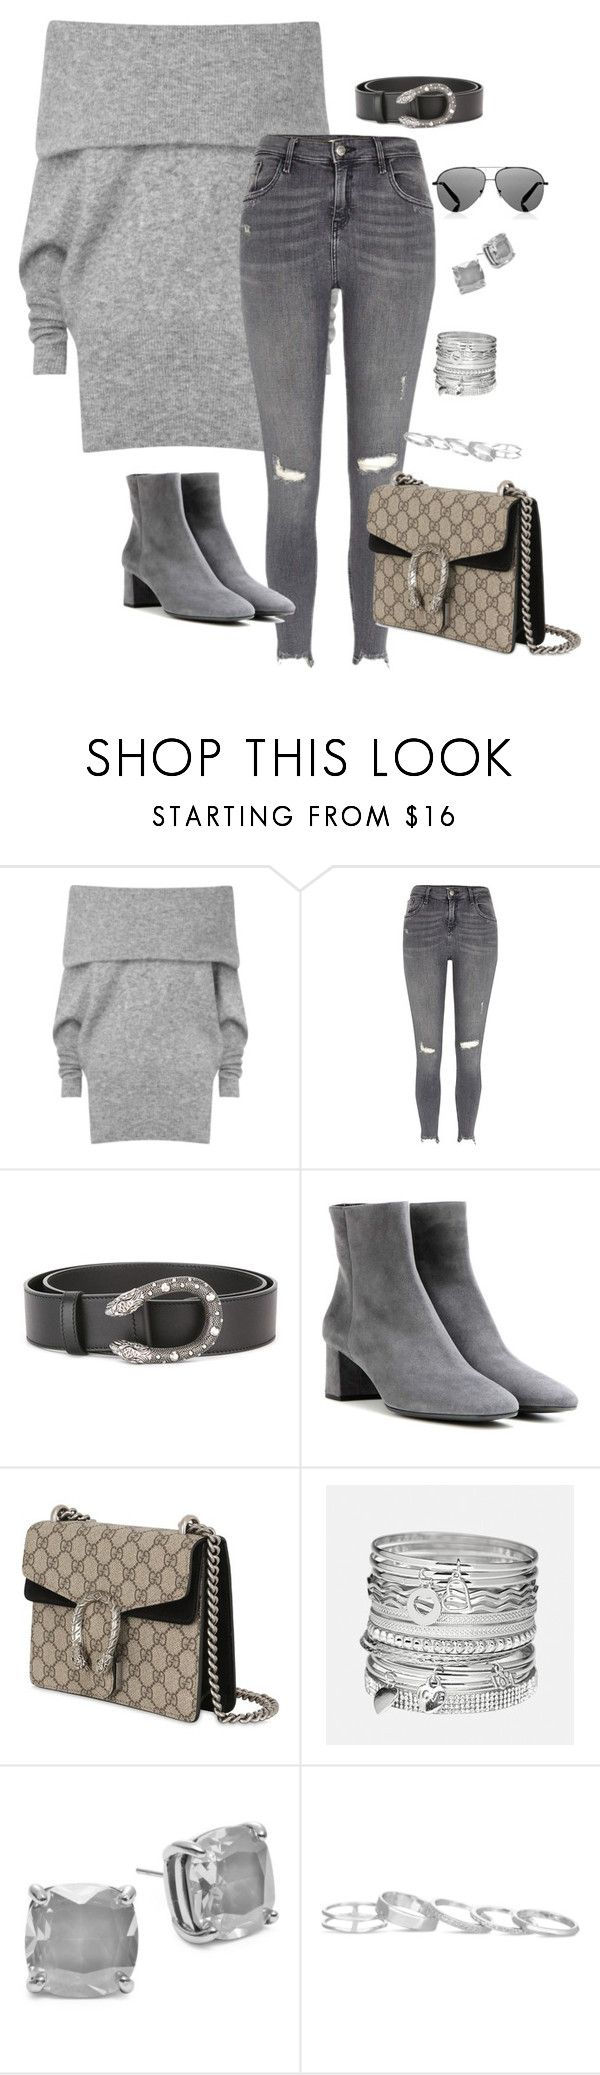 """Loving grays"" by stylemexo on Polyvore featuring Acne Studios, River Island, Gucci, Prada, Avenue, Kate Spade, Kendra Scott and Victoria Beckham"